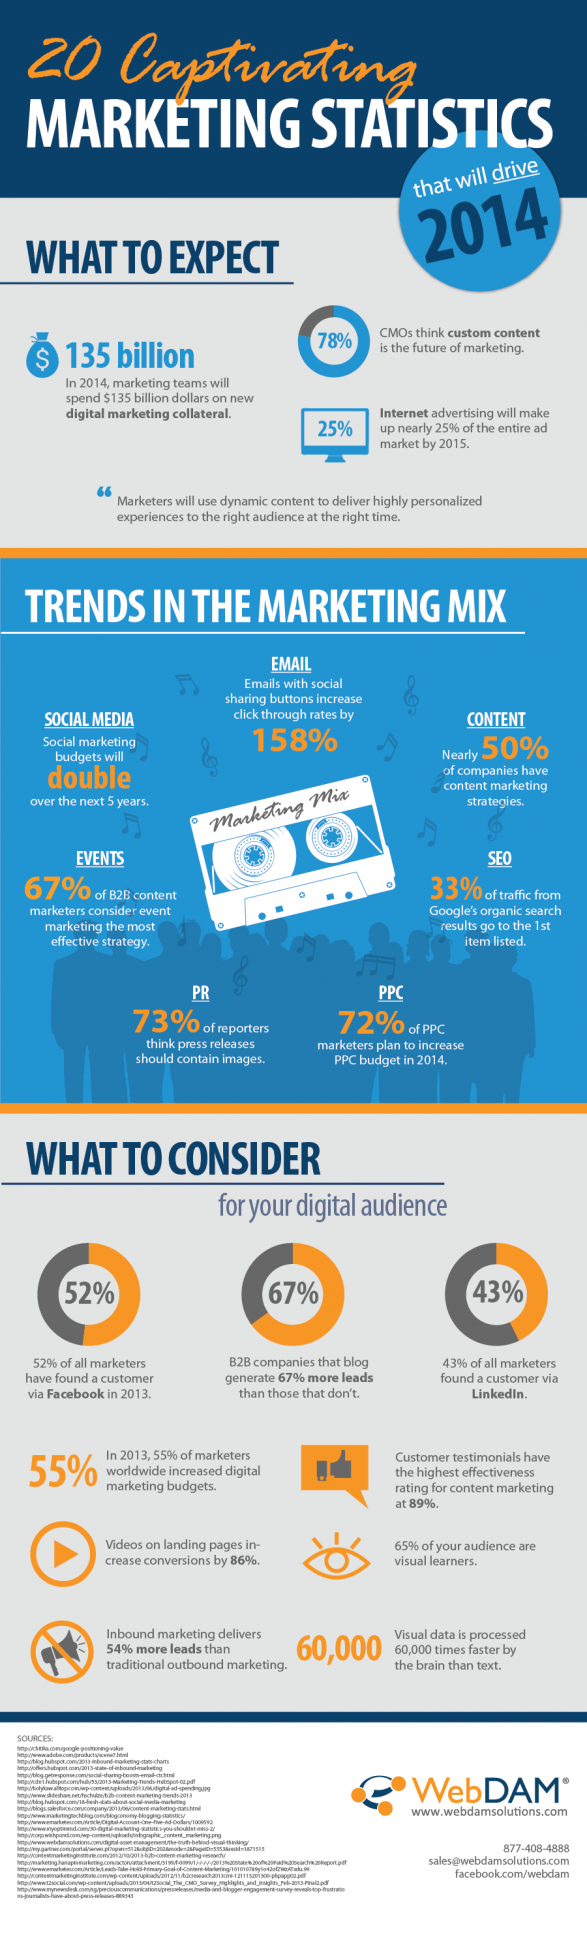 20 Captivating Marketing Statistics that will Drive 2014